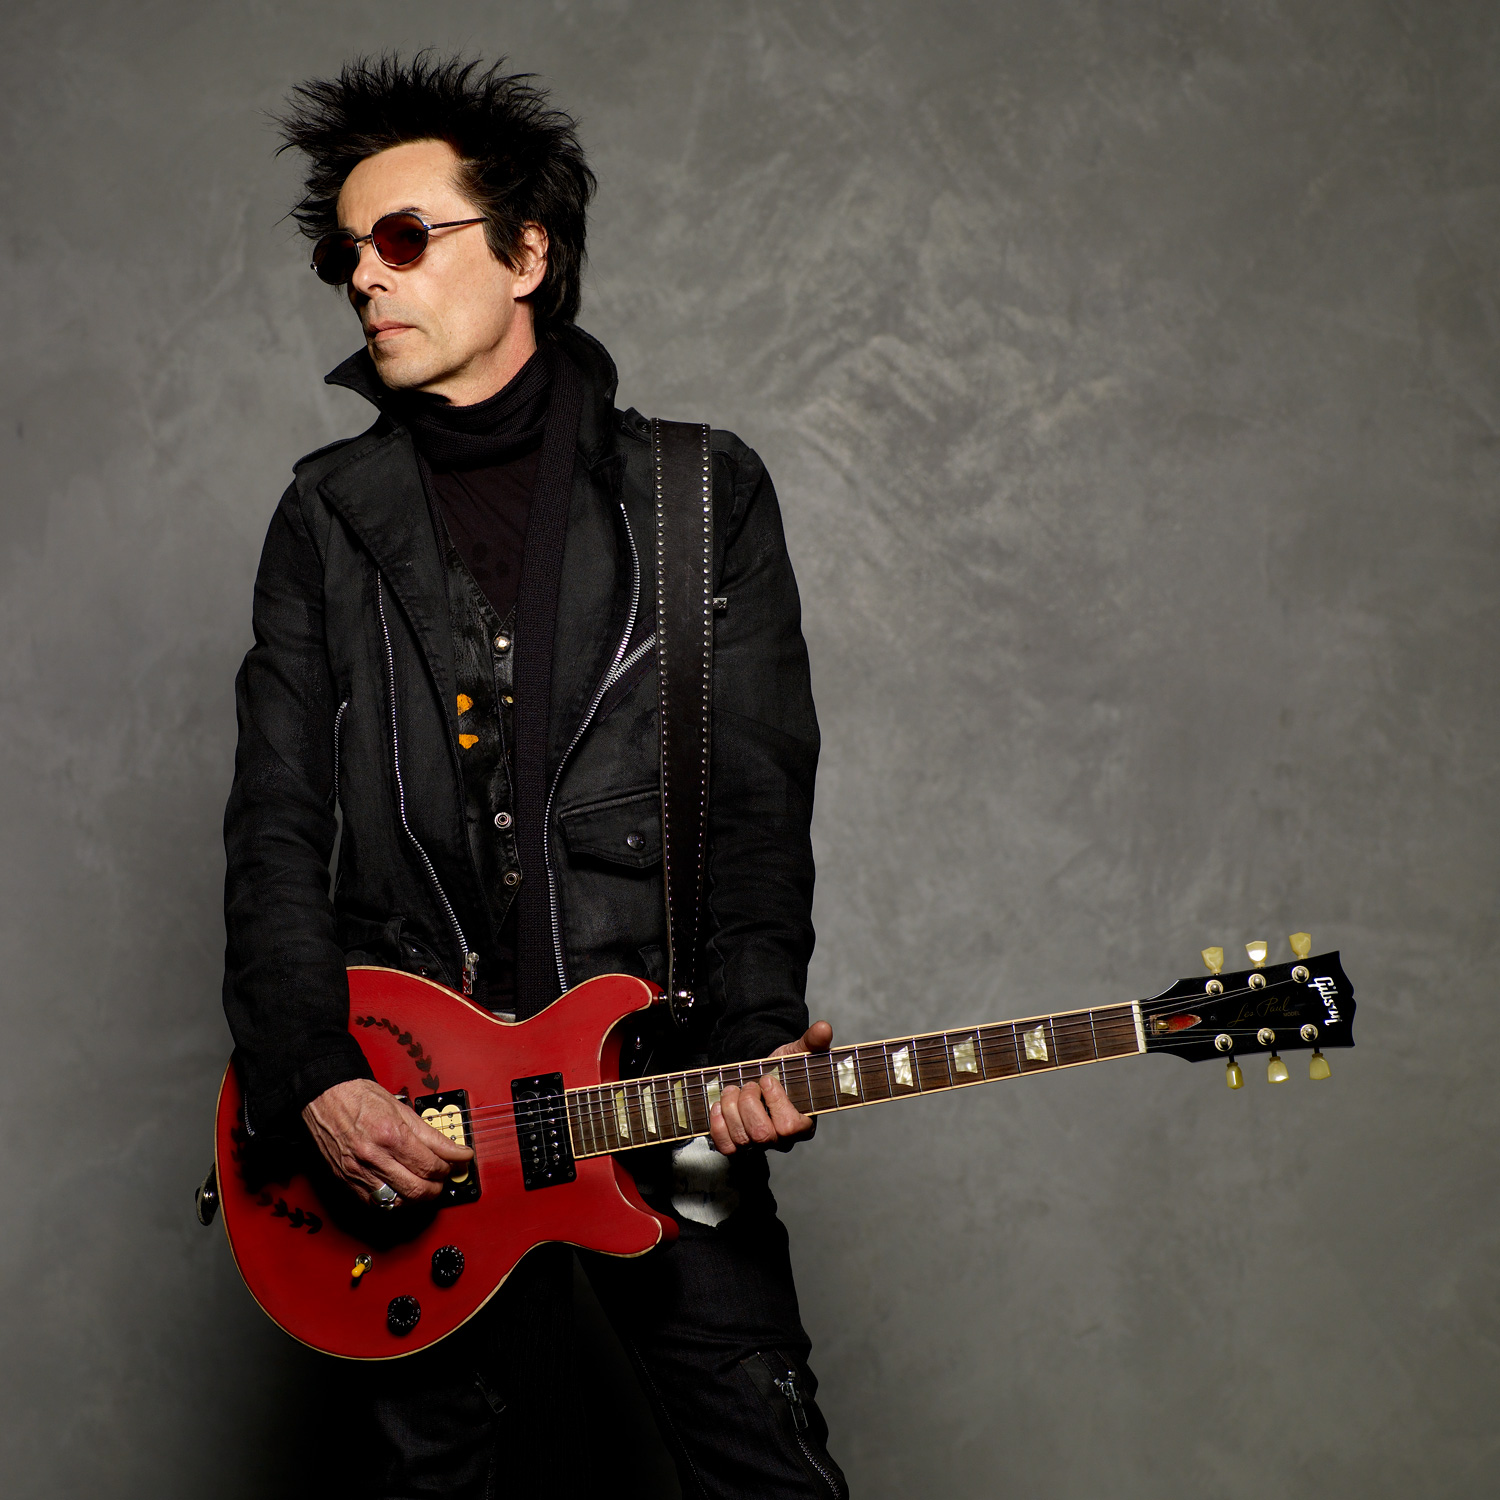 Earl Slick photo by Larry DiMarzio